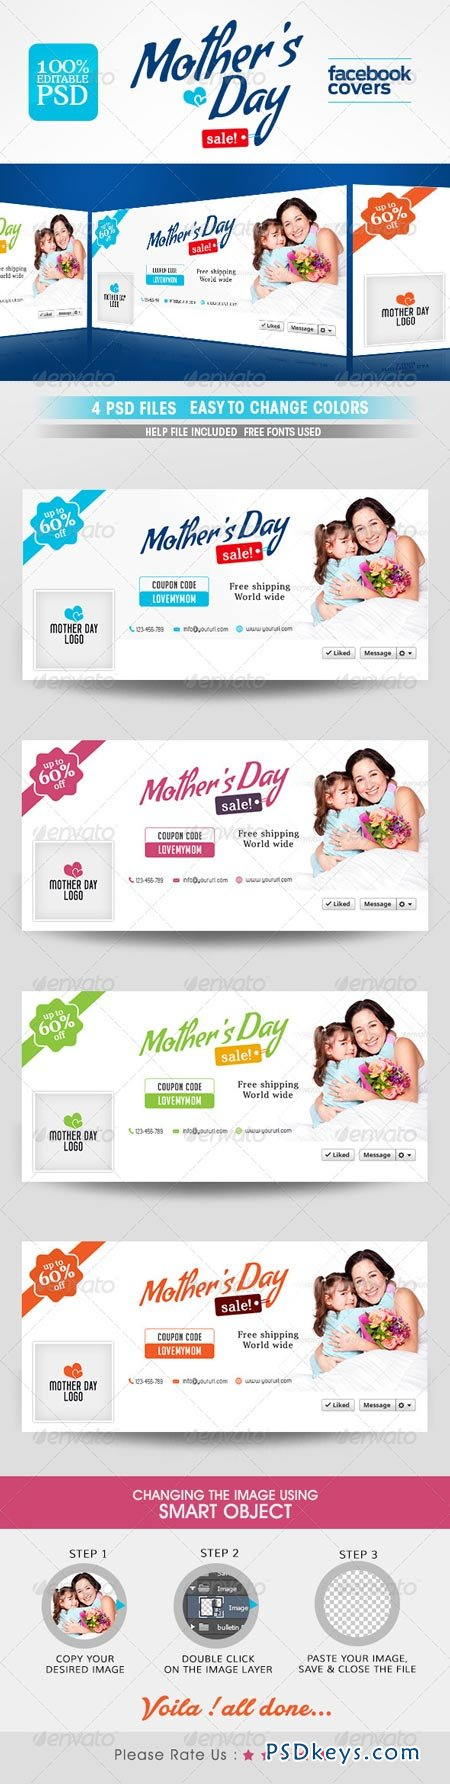 Mothers Day Facebook Cover 7688602